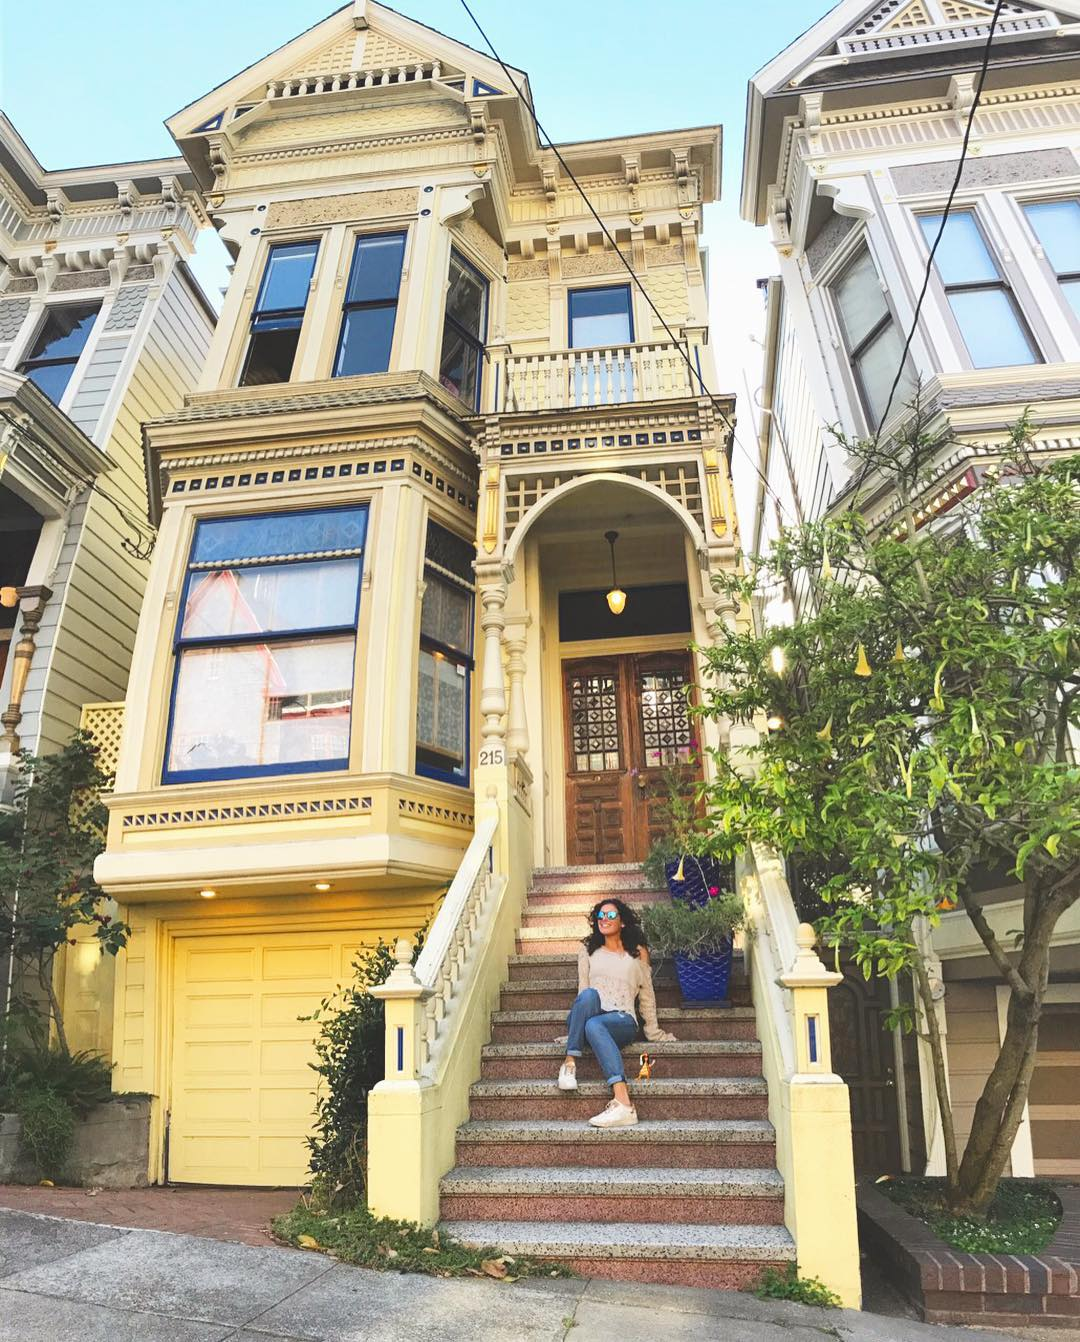 Just kickin it at my new crib! JK iwish sanfranciscohellip